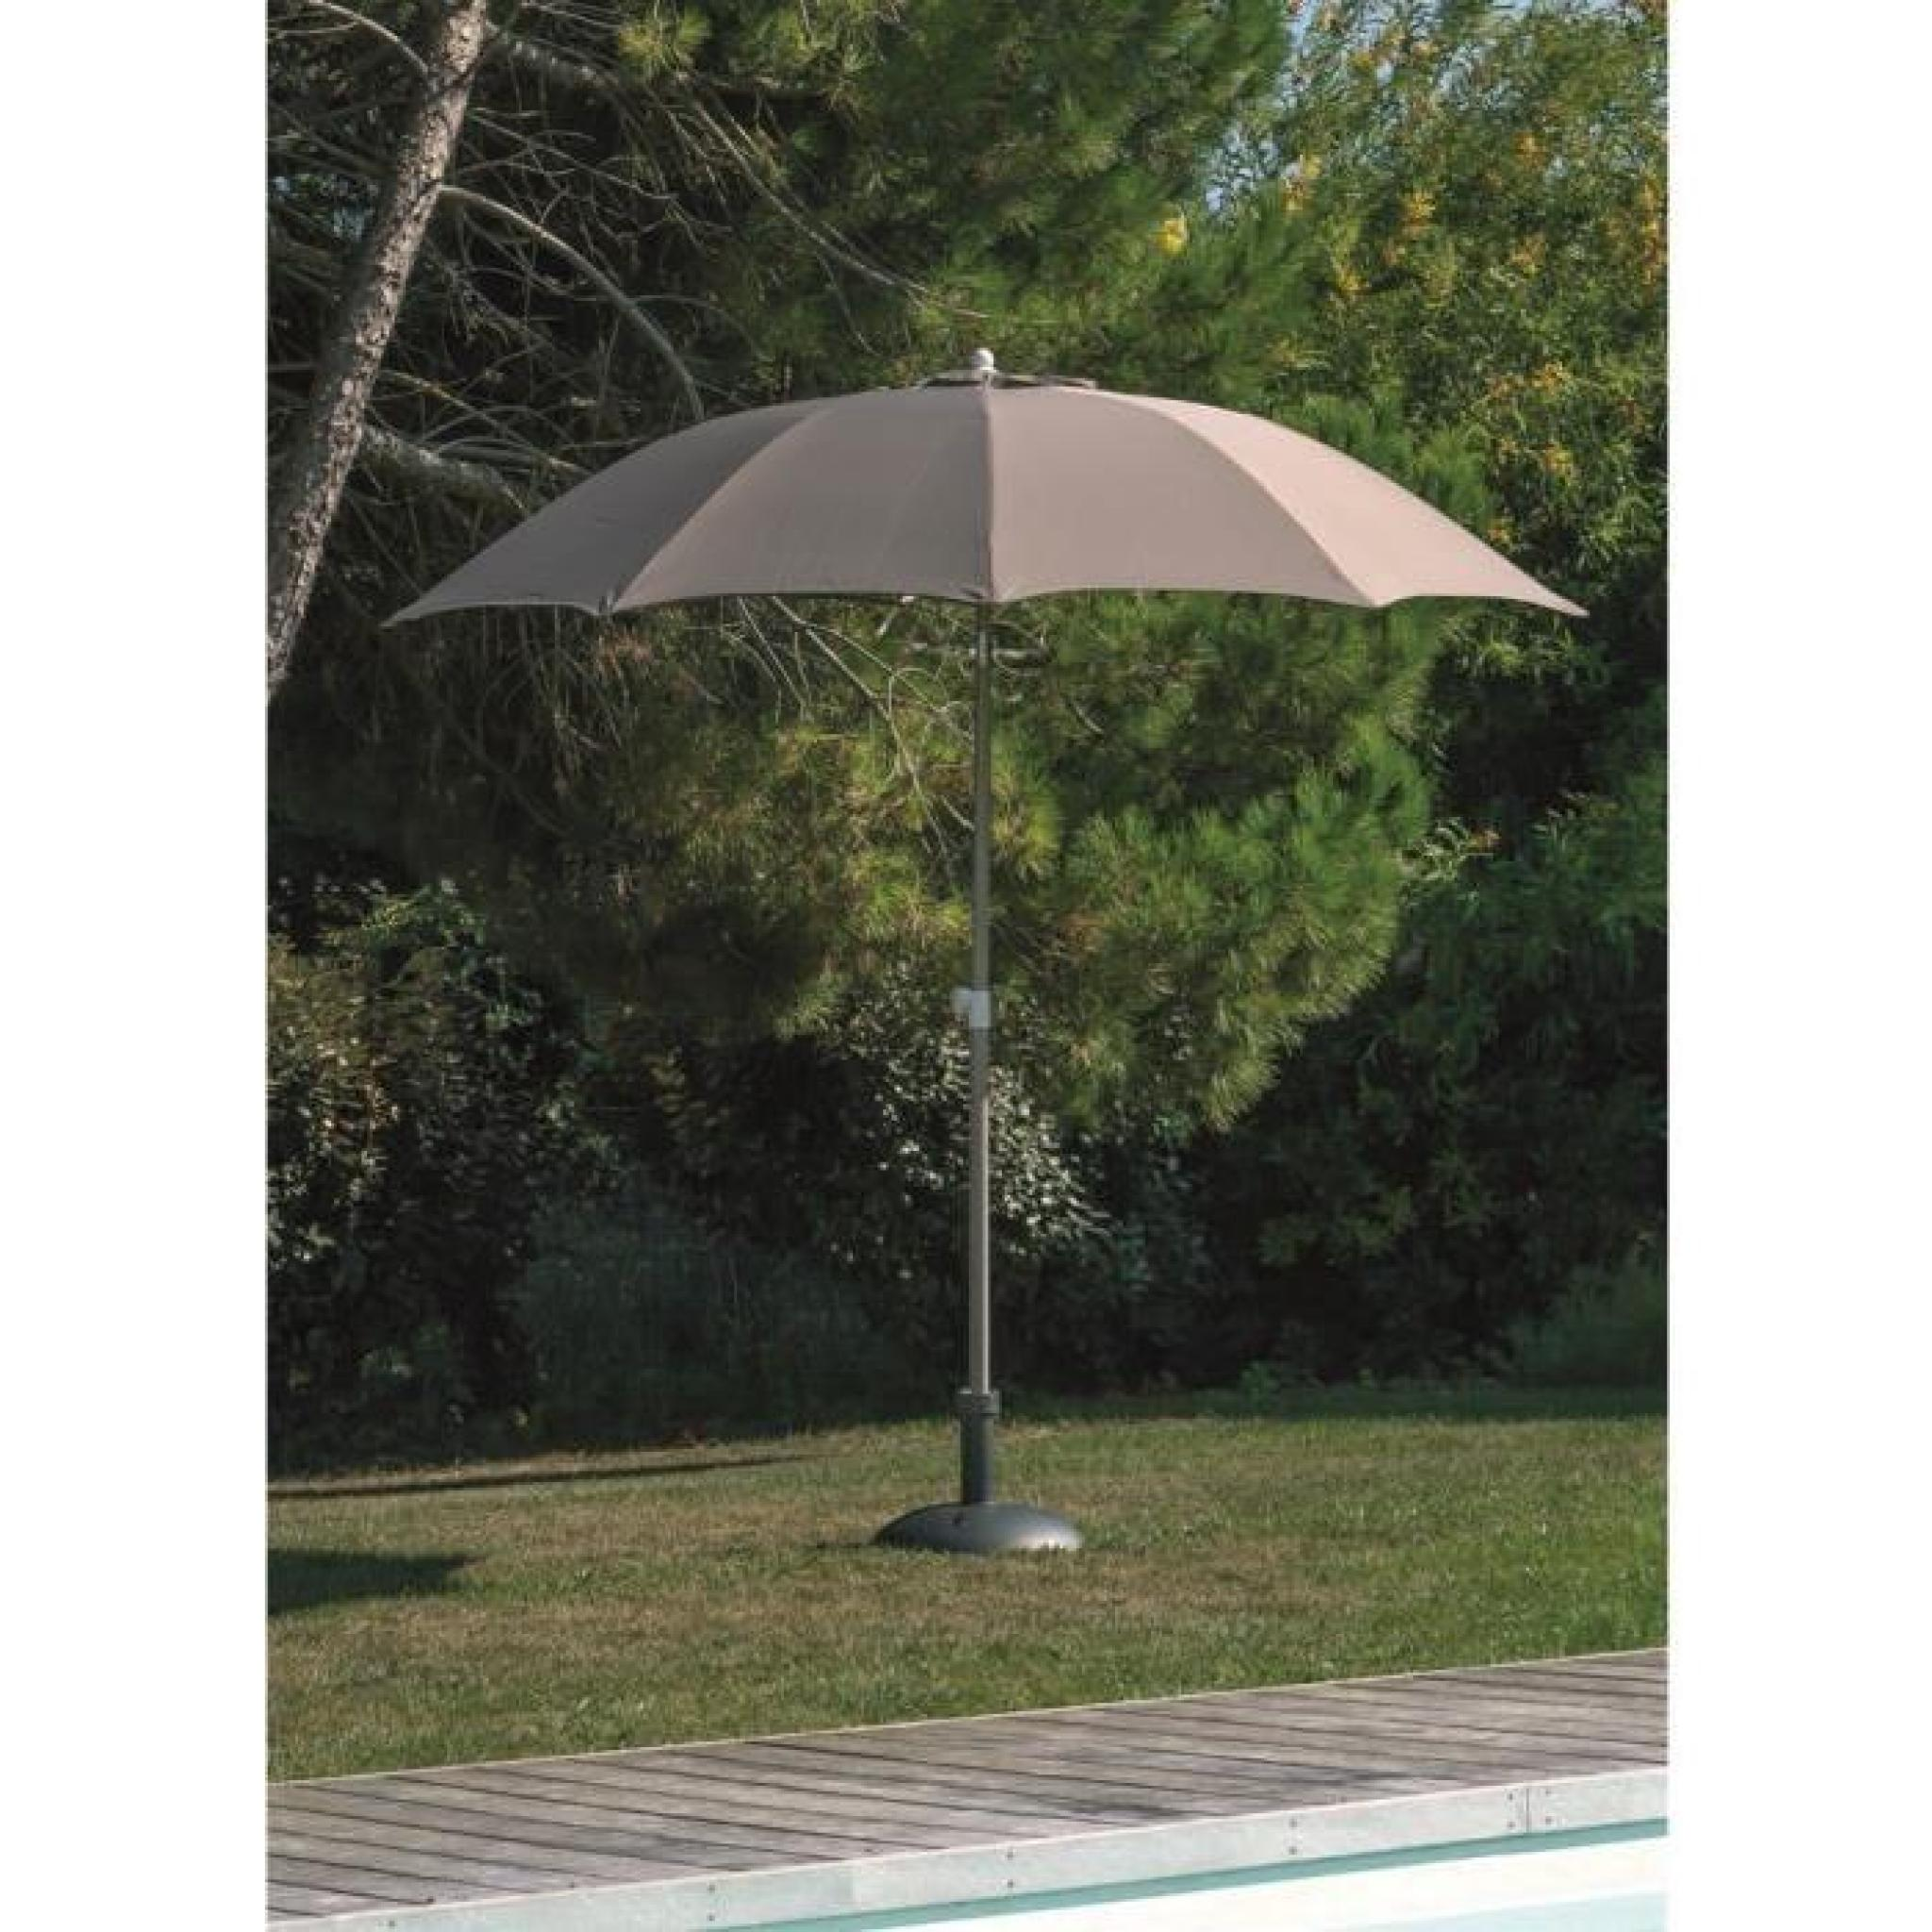 Parasol Fibre De Verre 270 Inclinable Taupe